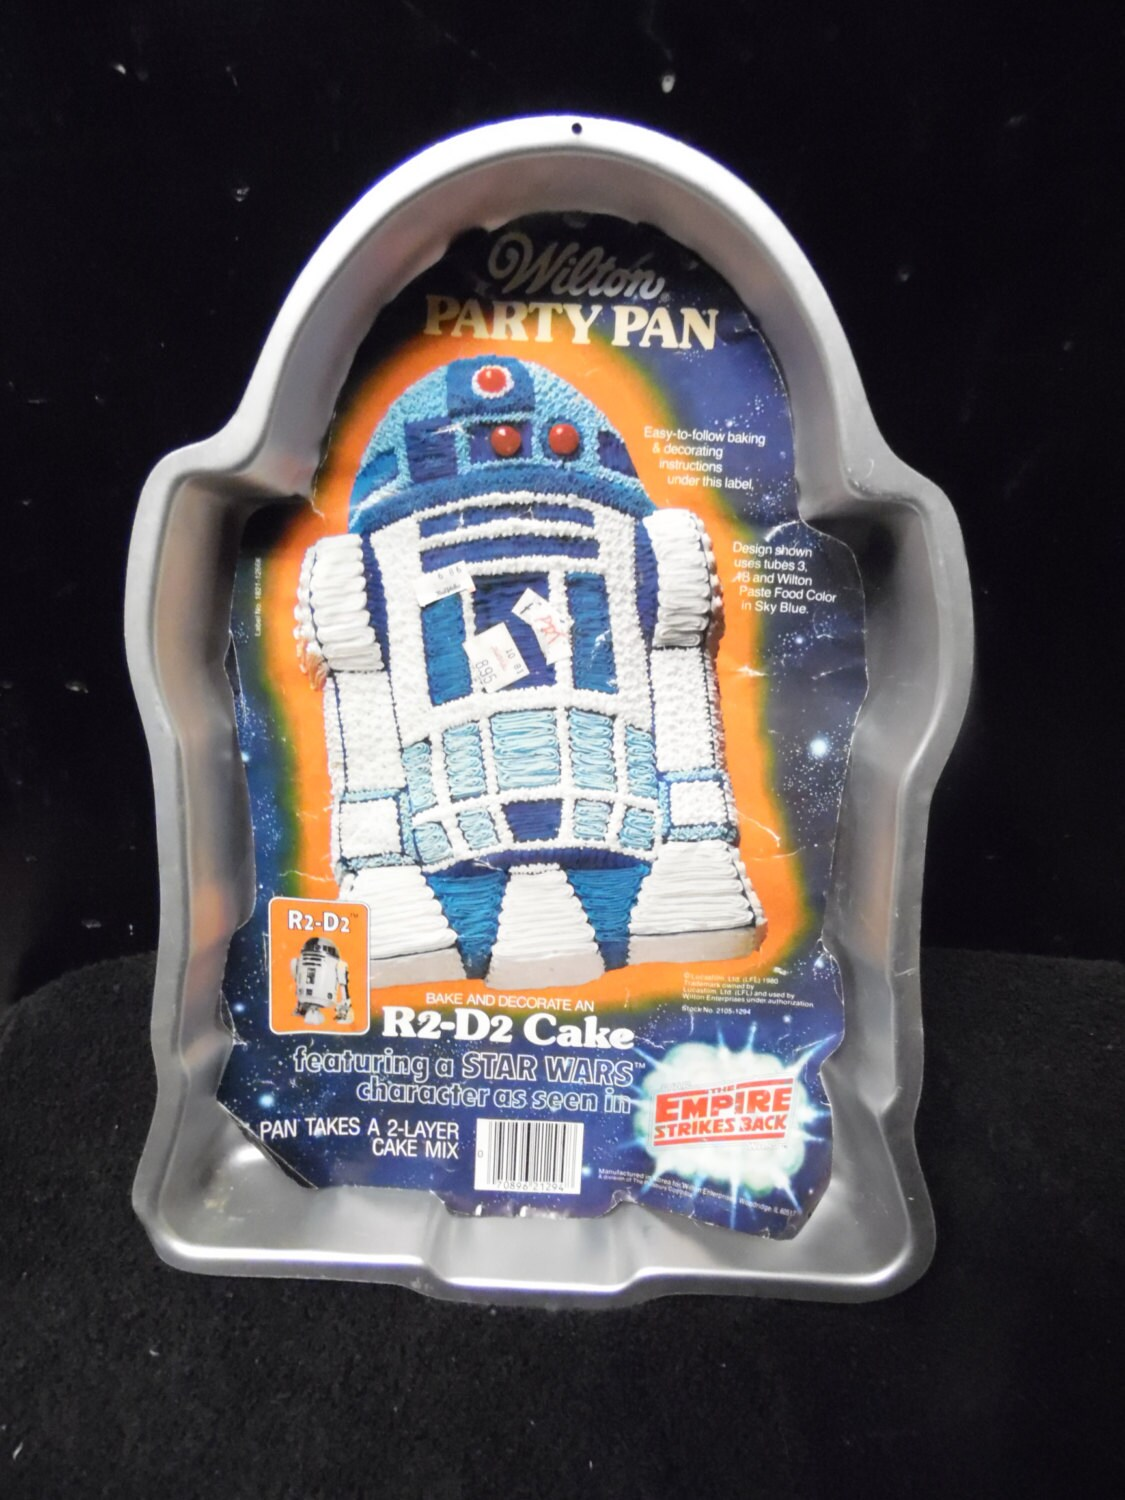 star wars cake pan wars r2d2 cake pan by wilton empire strikes back 7674